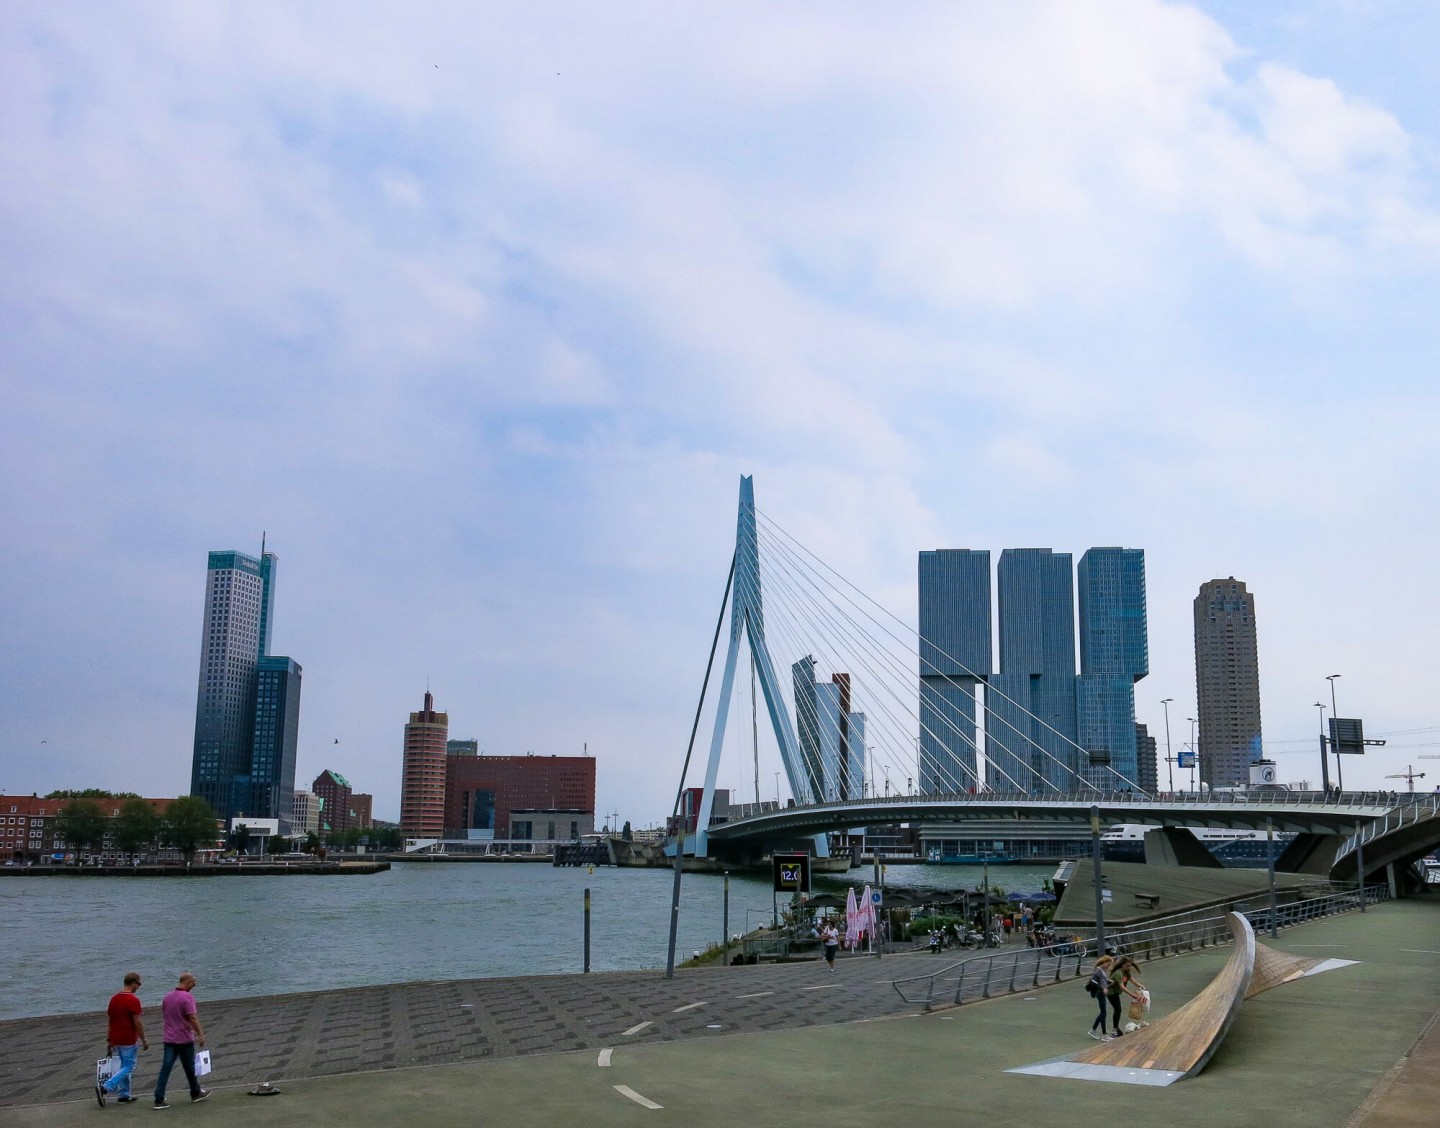 Rotterdam makes a great European city break. It is full of modern architecture, making it a great alternative to Amsterdam.